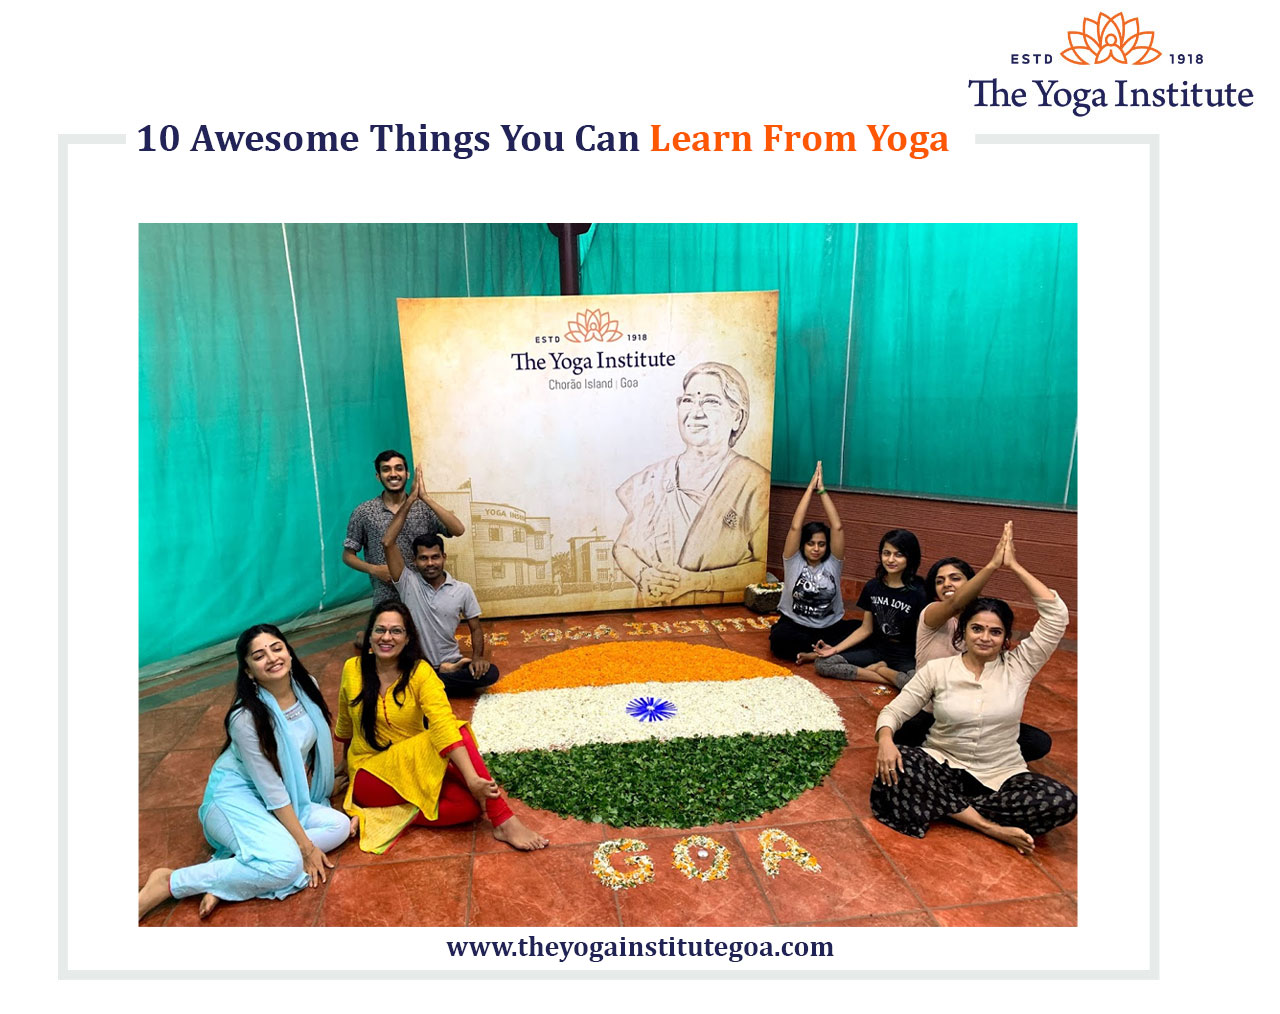 Awesome Things You Can Learn from Yoga